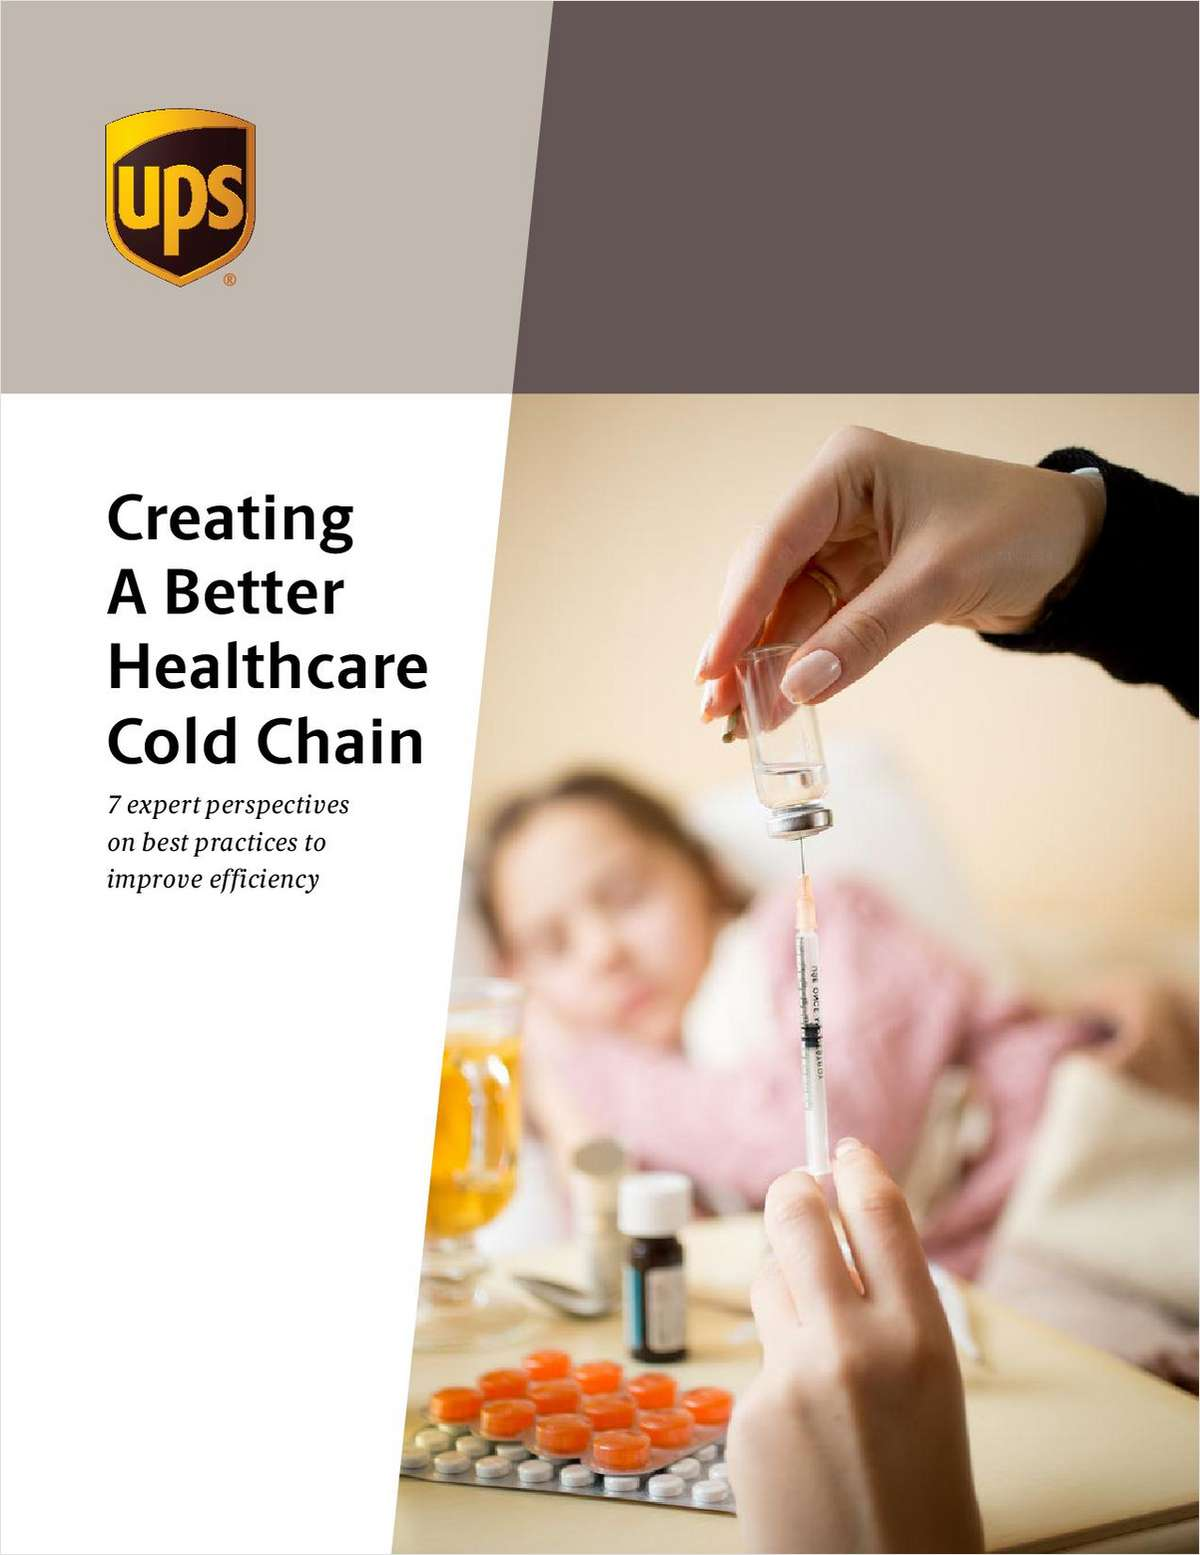 Creating a Better Healthcare Cold Chain